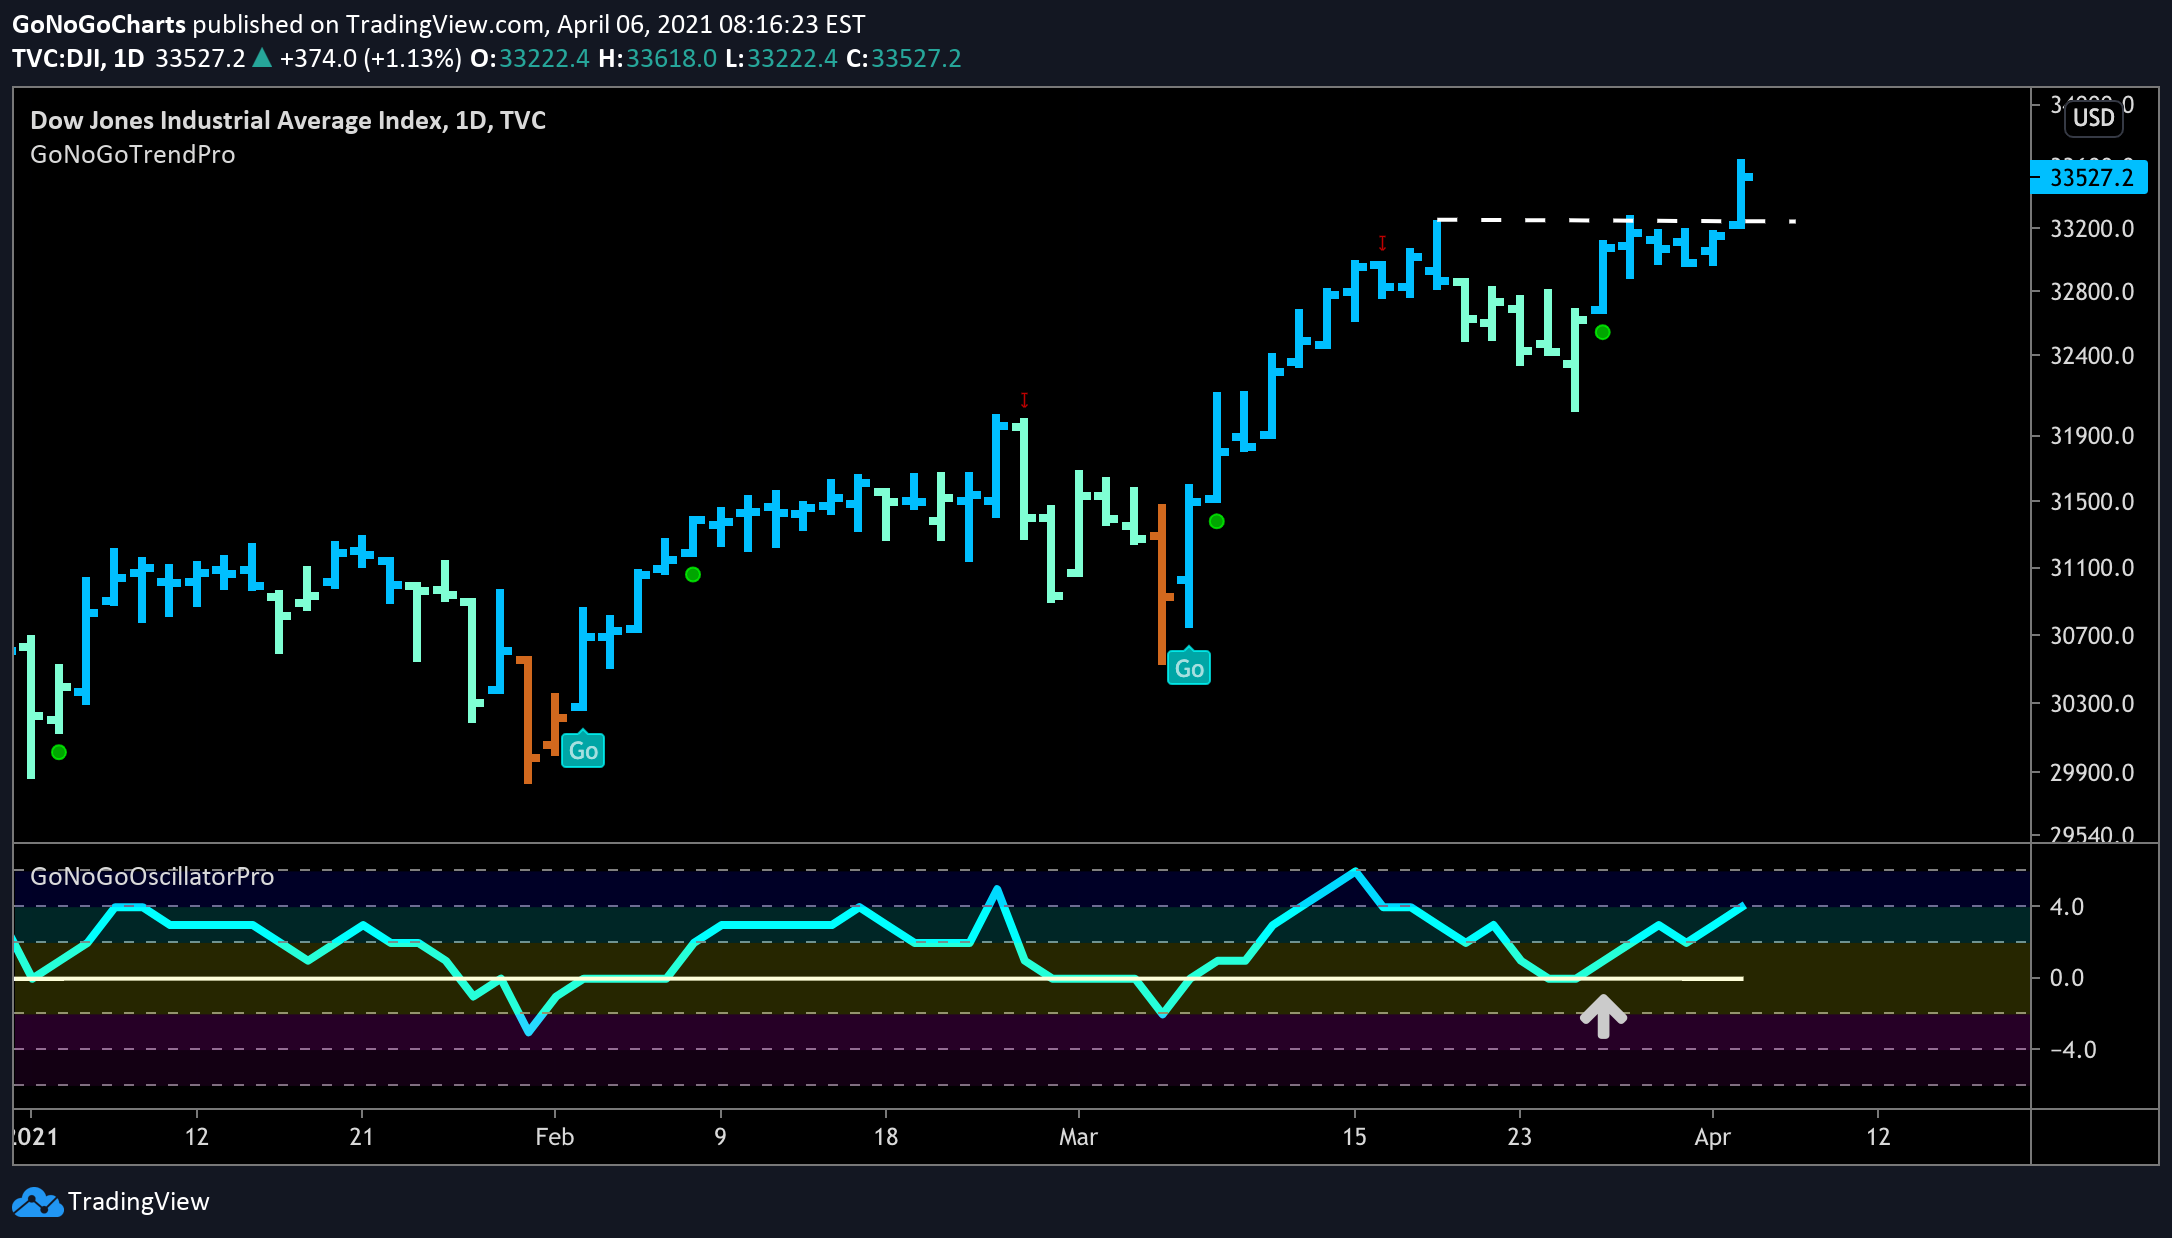 Dow Jones Industrial Average follows through on low risk entry